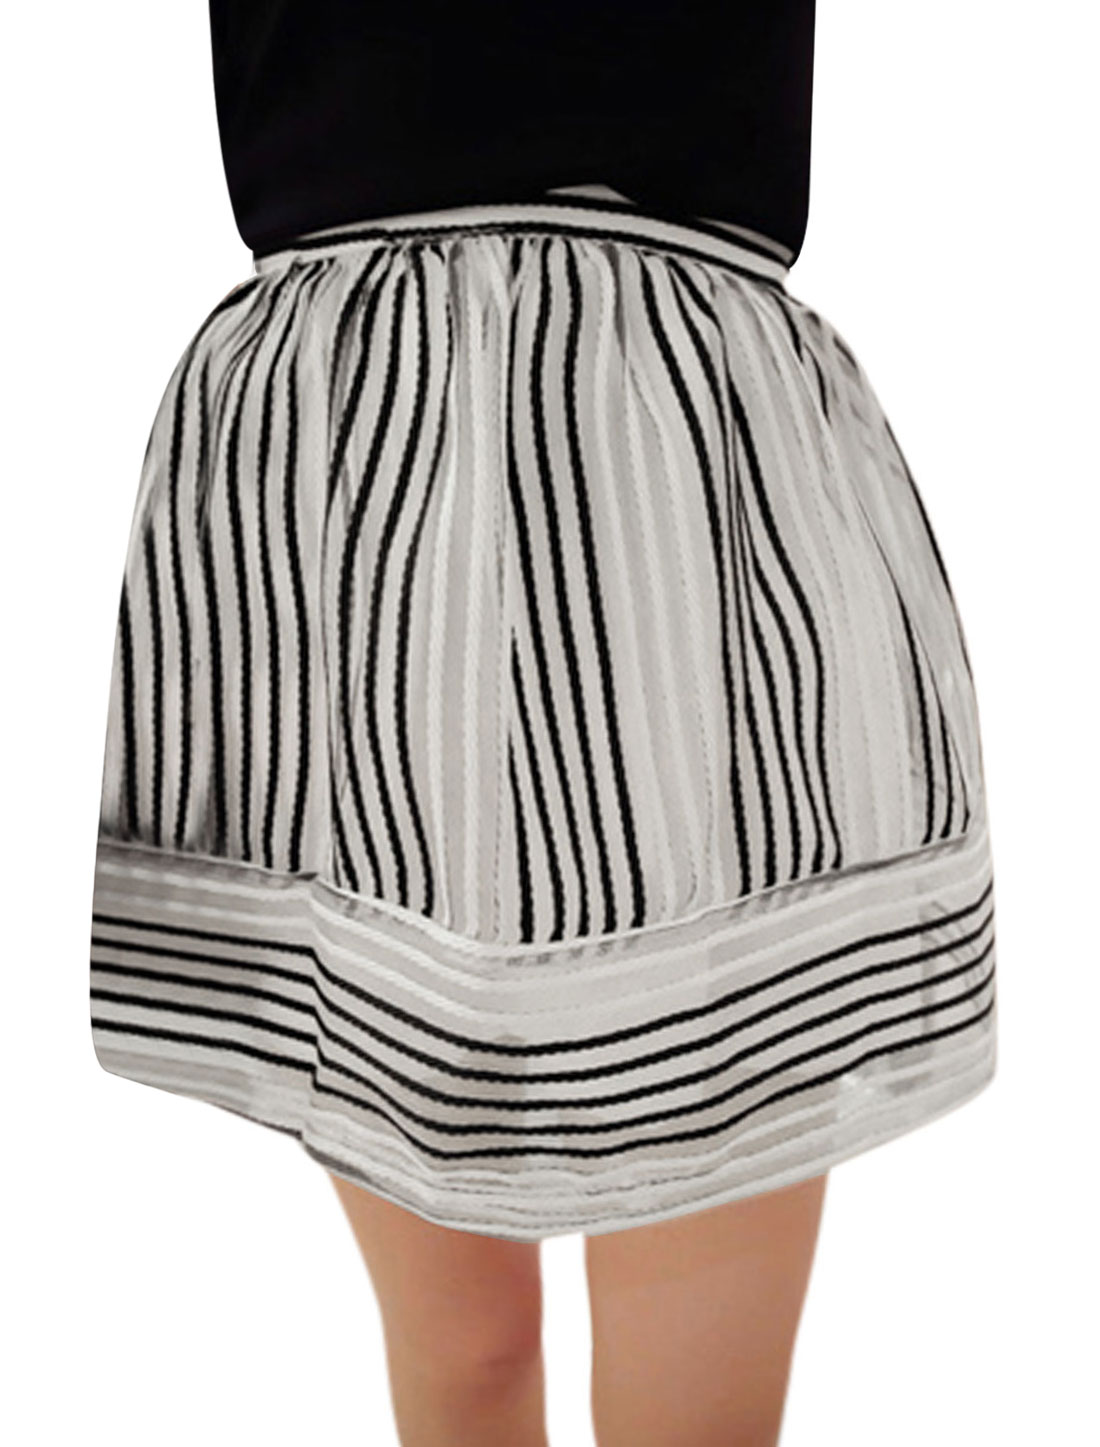 Lady Elastic Waist Stripes Fully Lined Organza Overlay Mini Skirt Black White XS